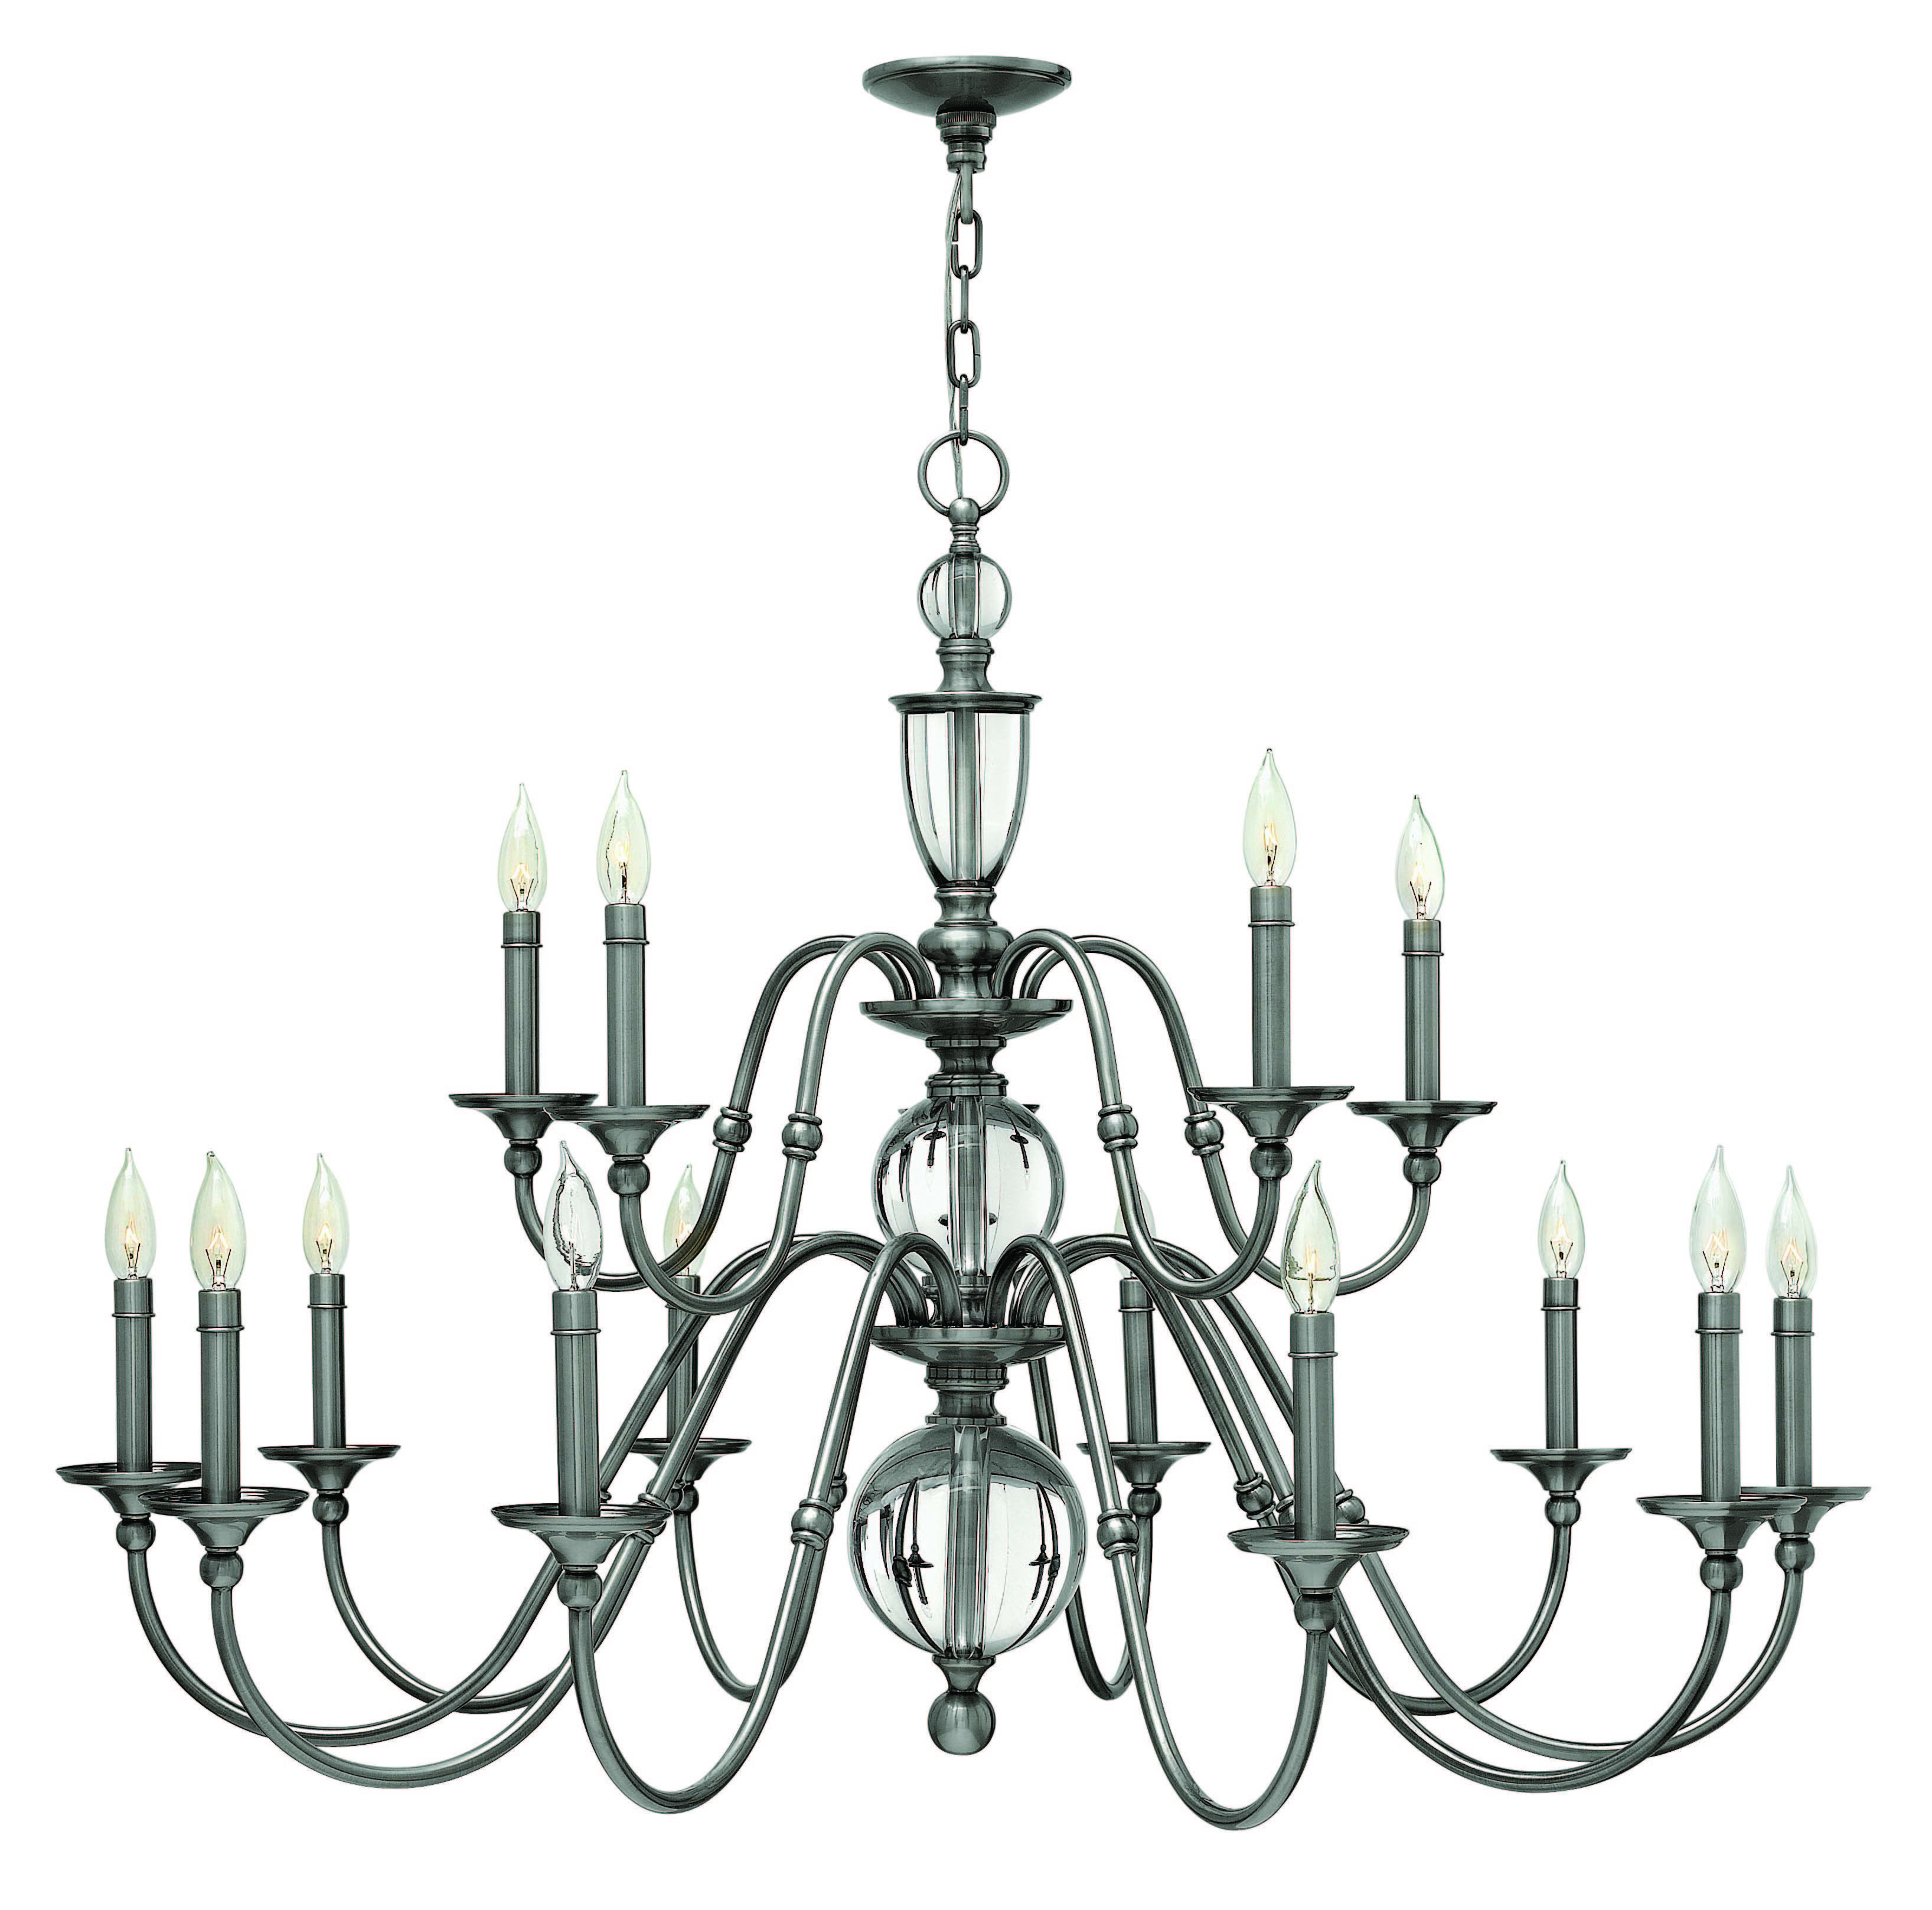 Hinkley Lighting 4959HB Heritage Brass 15 Light 2 Tier Candle